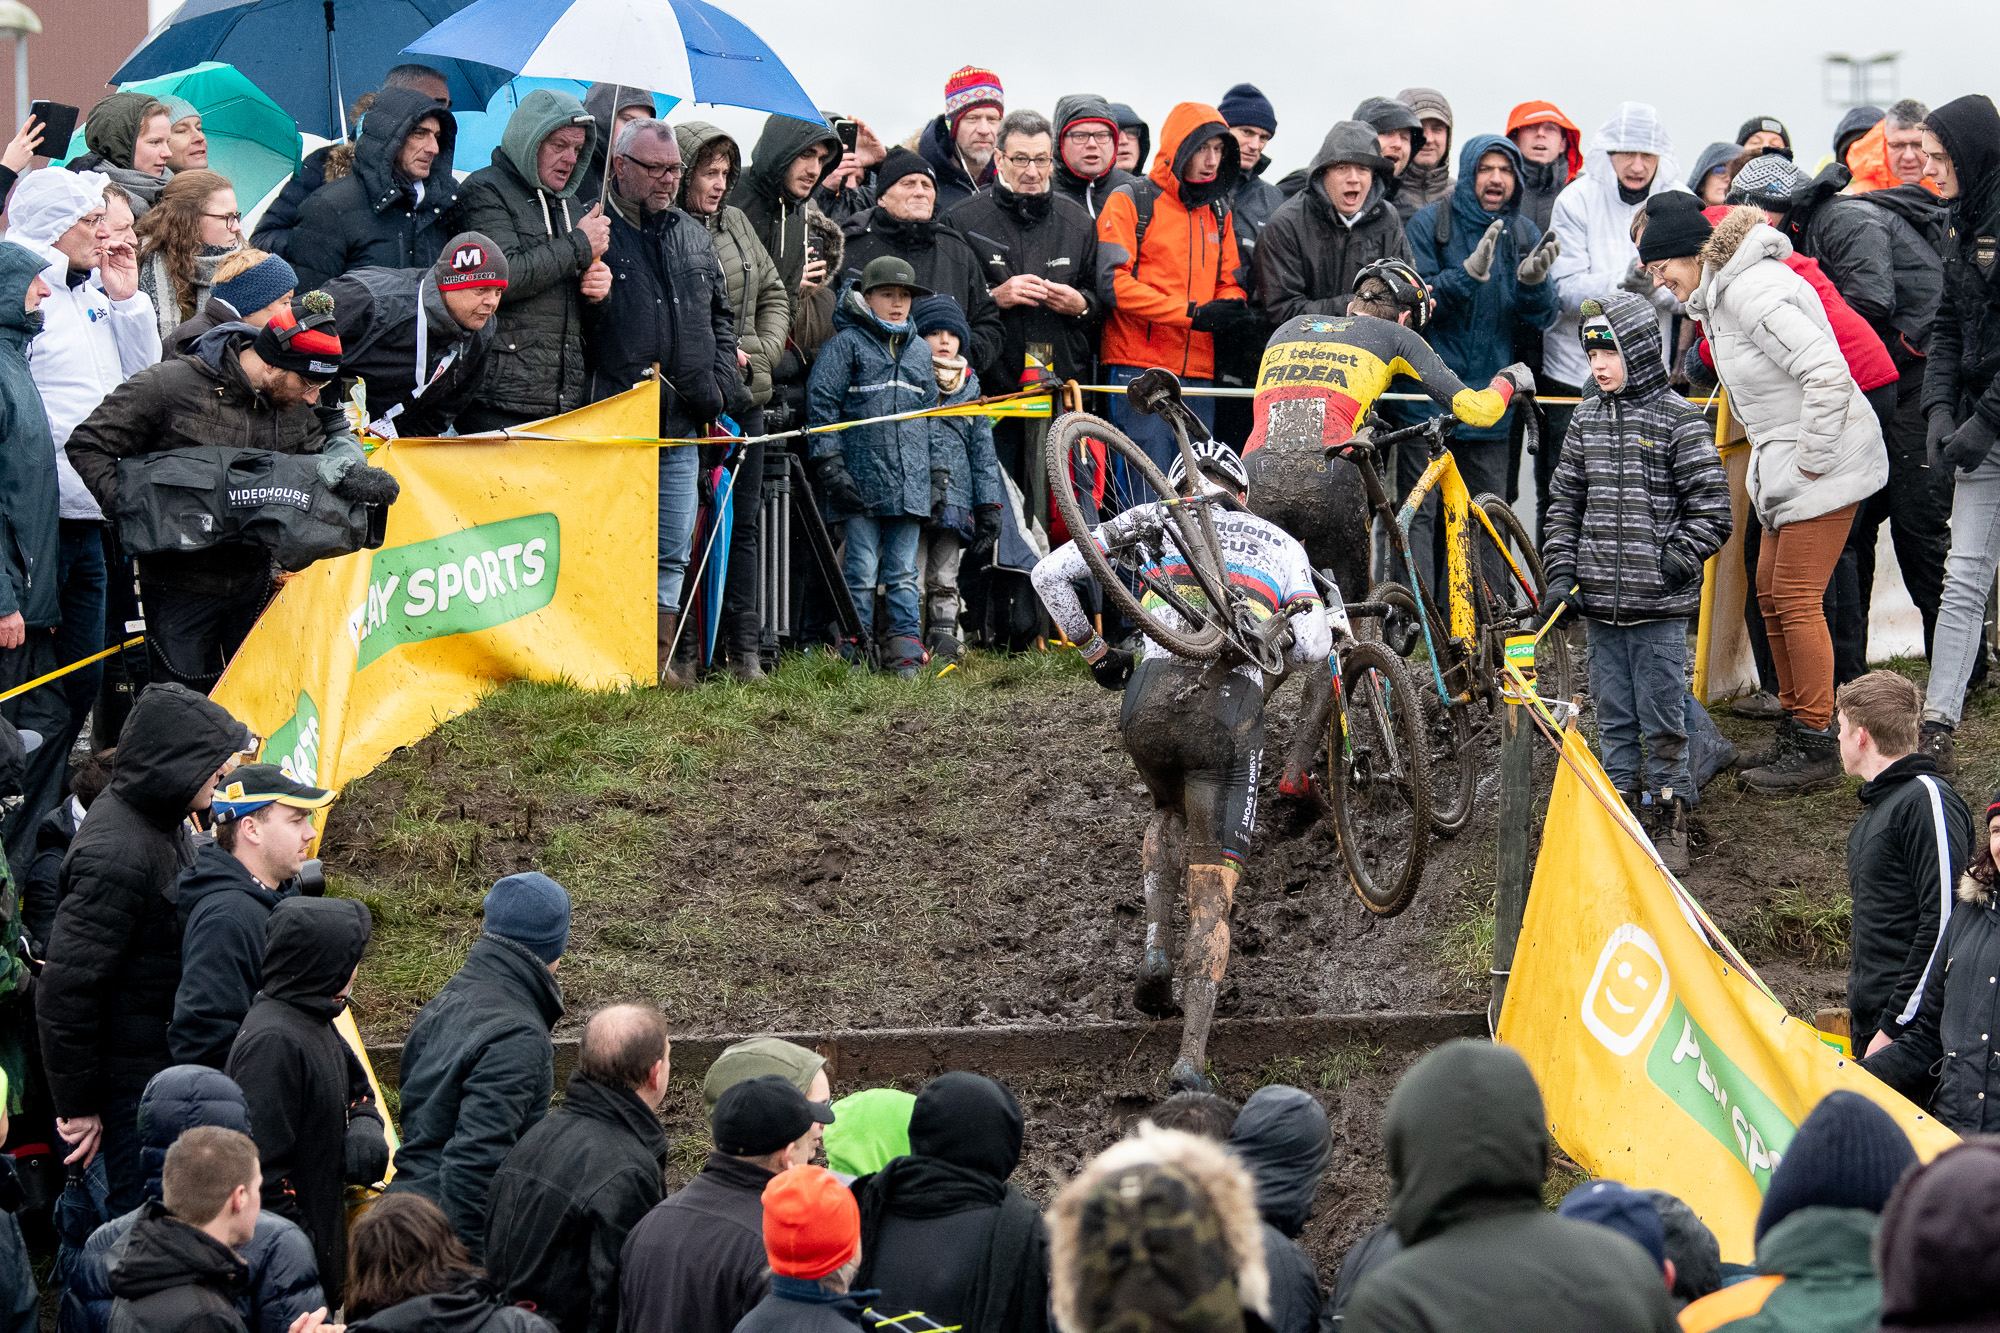 Van der Poel and Aerts on the run-up in Hoogstraten